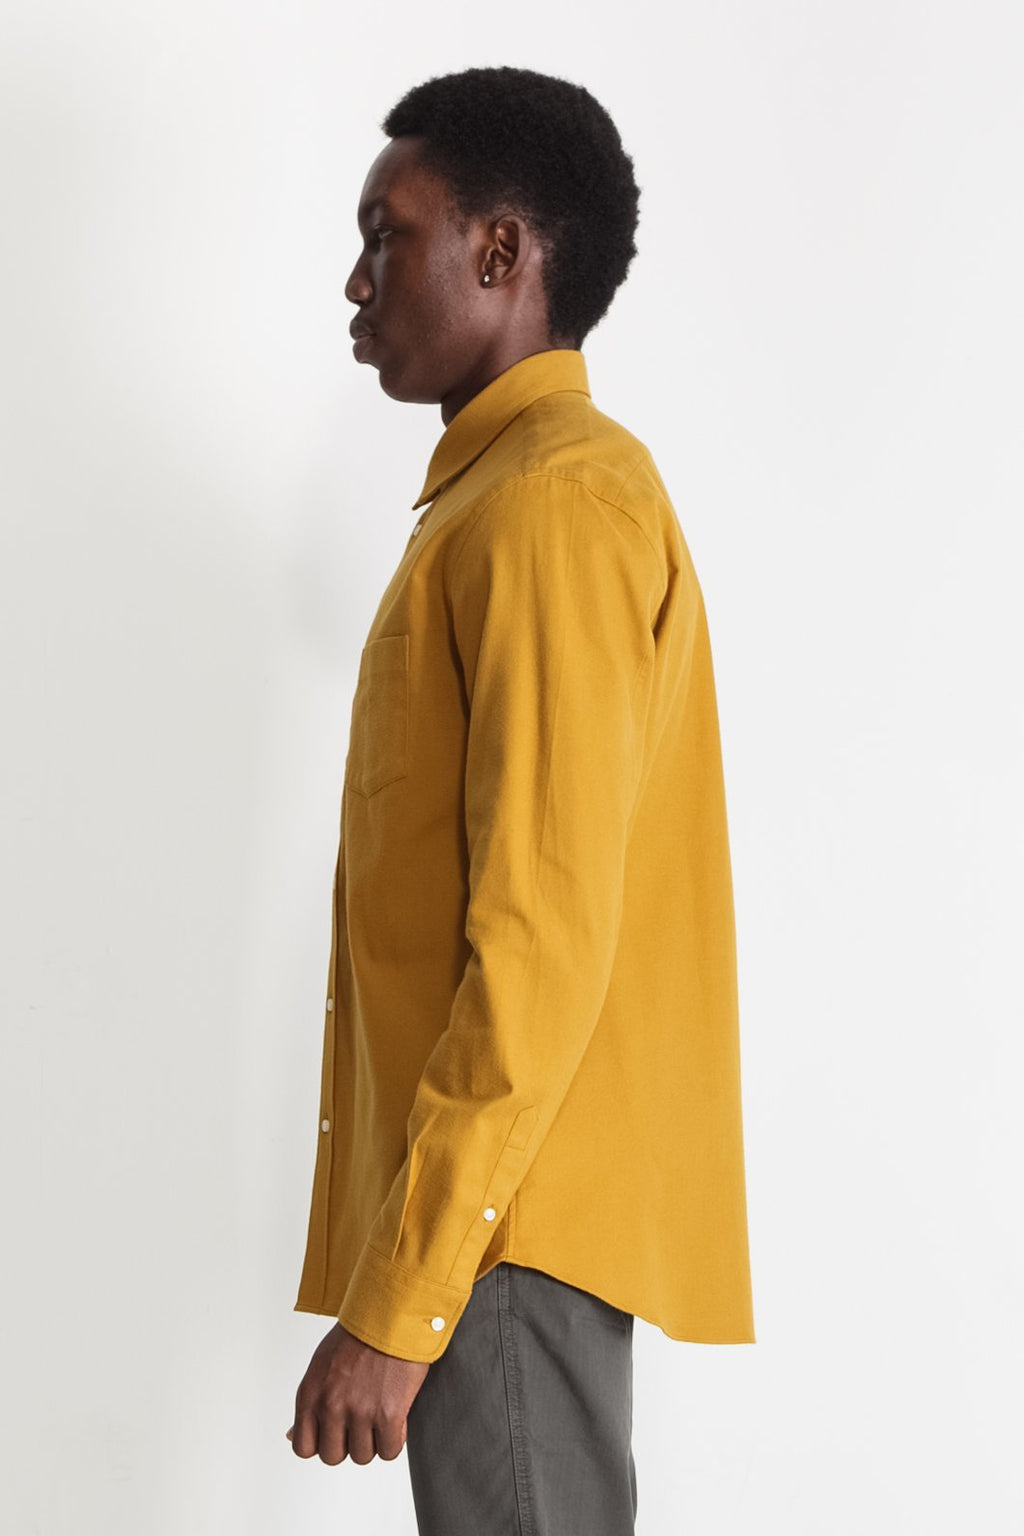 Japanese Yarn Dyed Flannel in Mustard 01